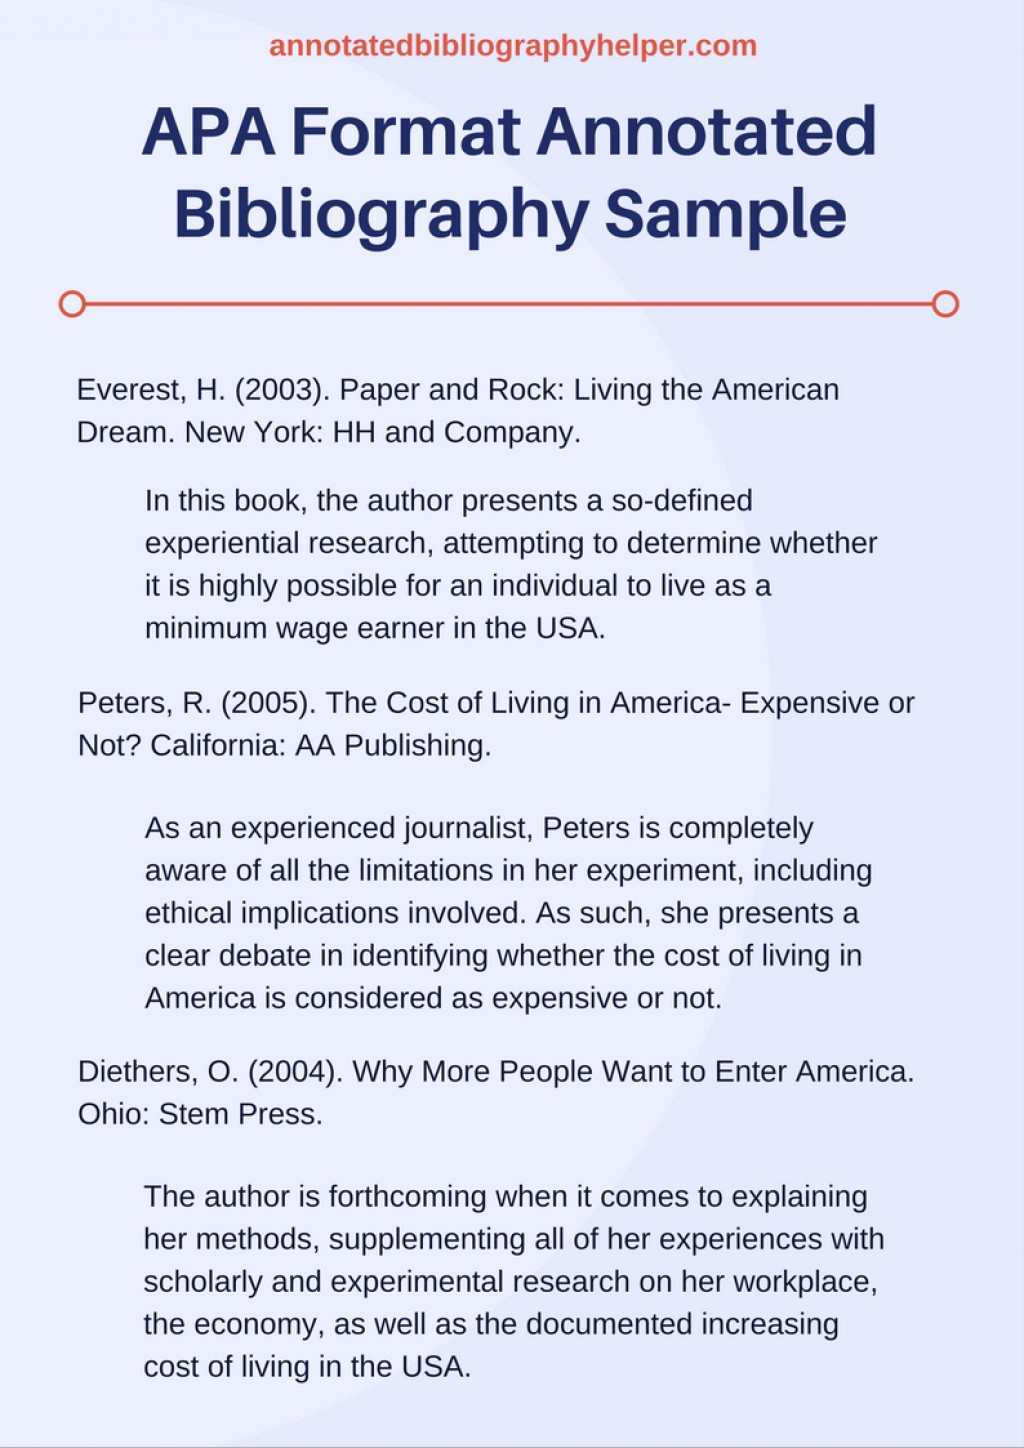 003 Research Paper Bibliography Stunning Generator Large